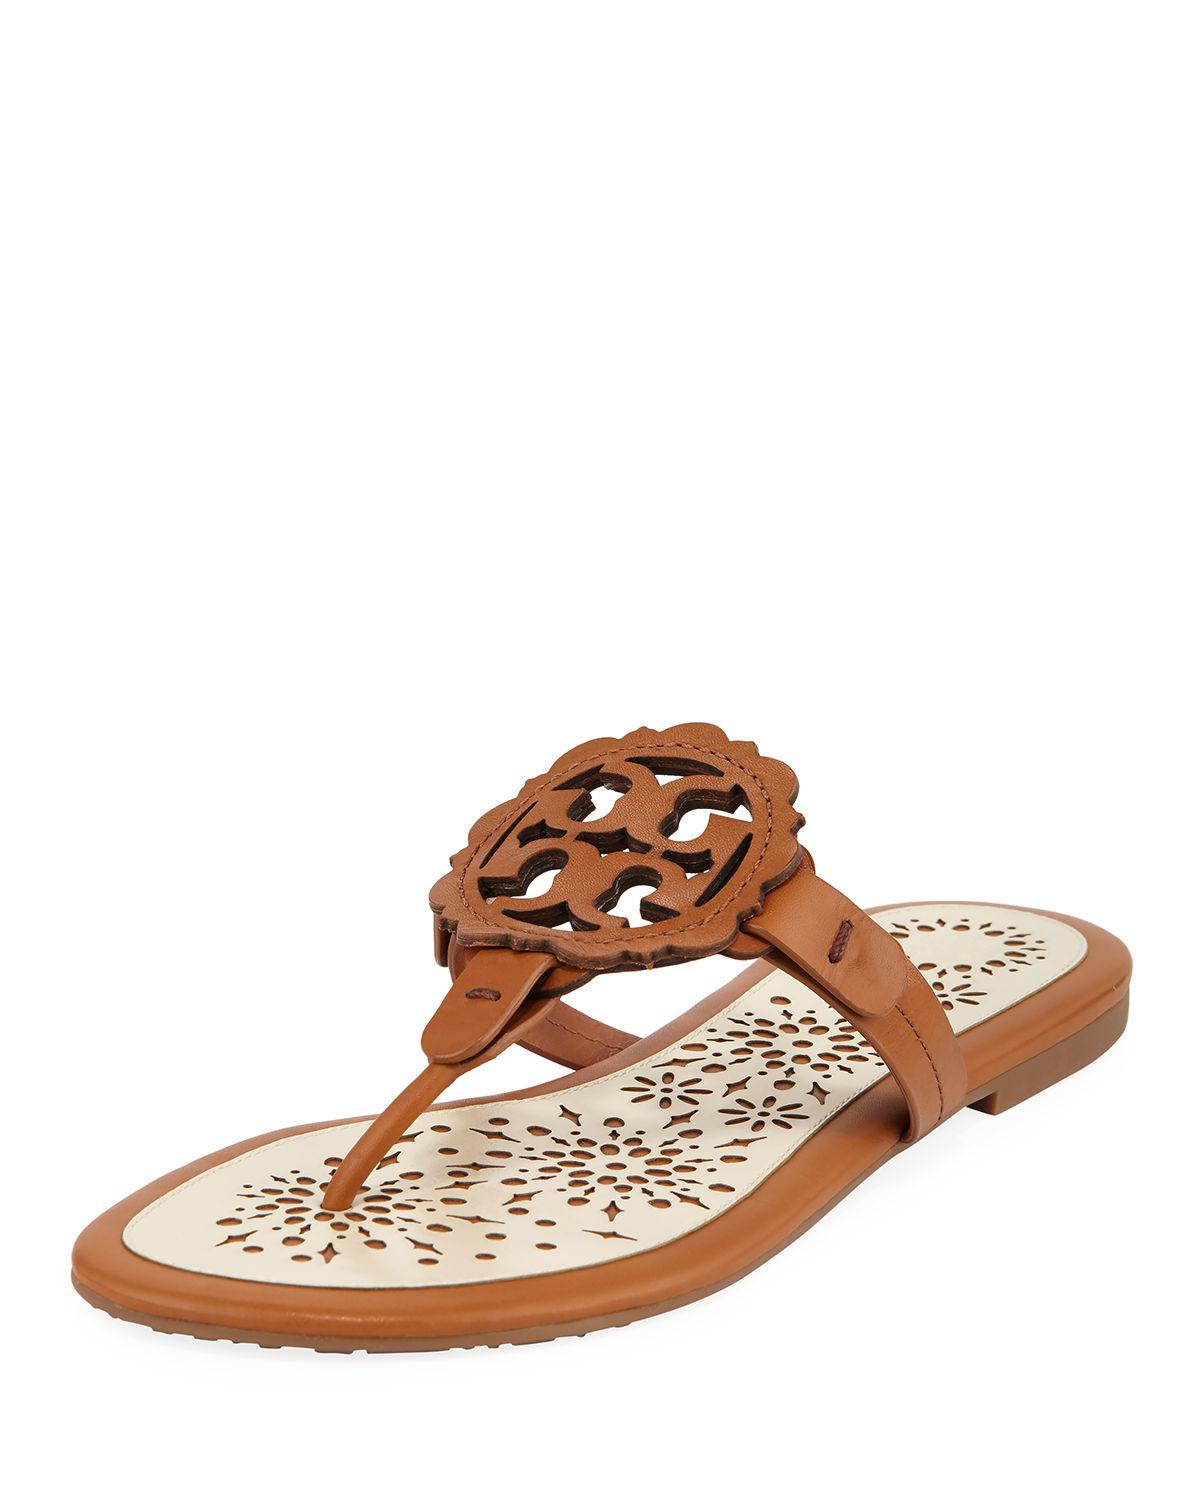 be943c64d2c30f TORY BURCH Women s Miller Scallop Leather Thong Sandals in Tan  New Cream. Tory  Burch Women